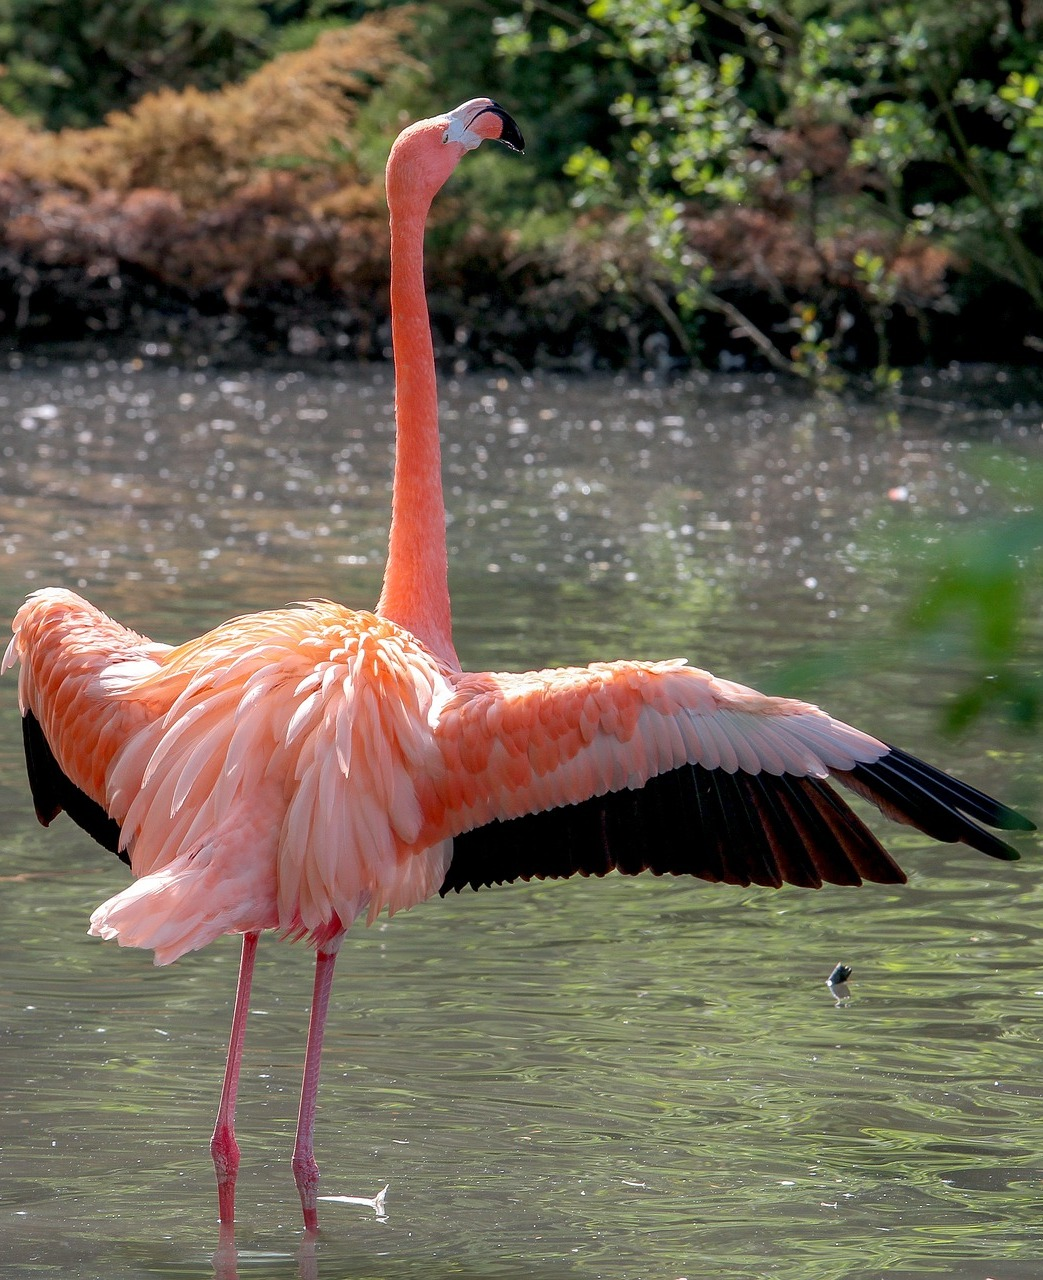 Beautiful flamingo with wings spread out.